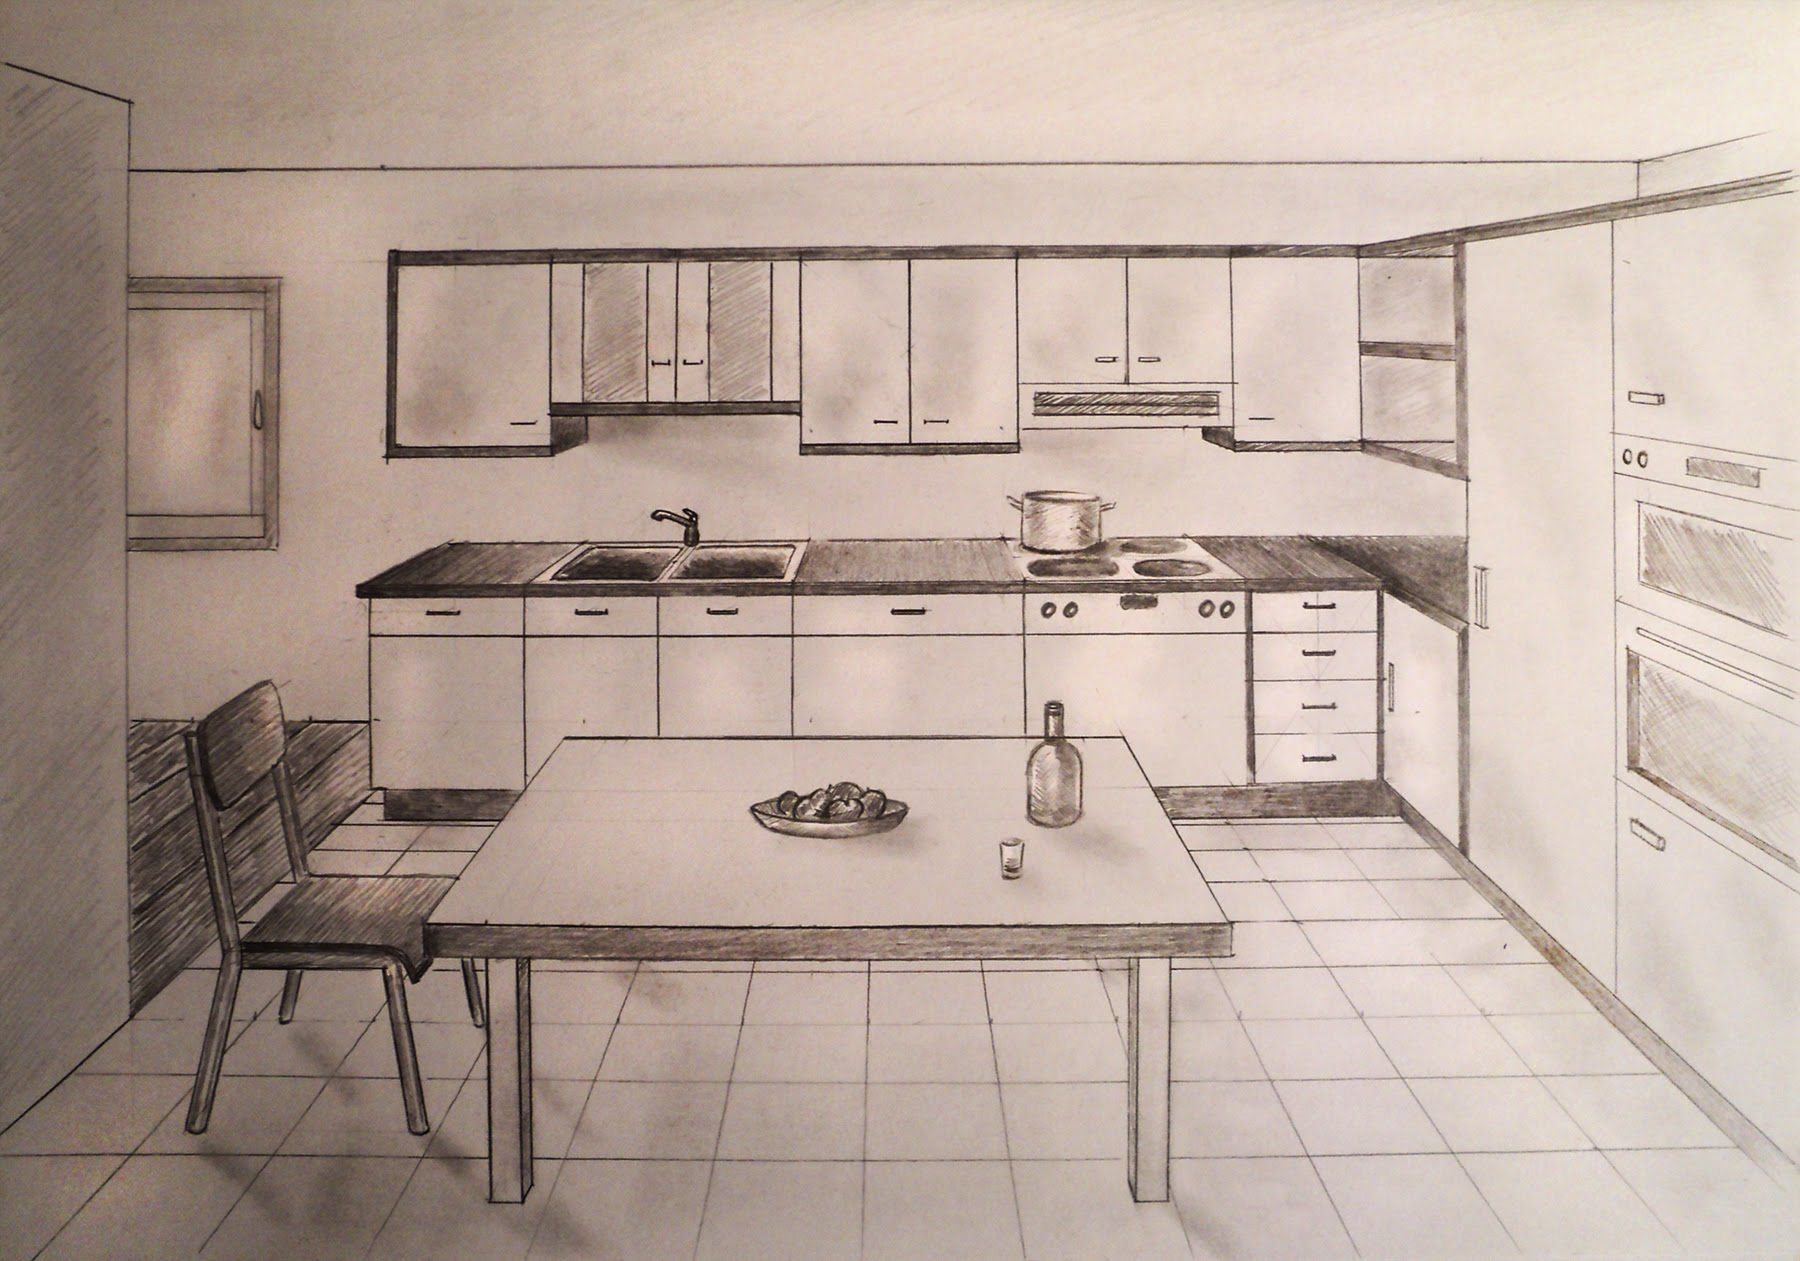 Beau How To Draw   One Point Perspective Kitchen With Furniture, Desk